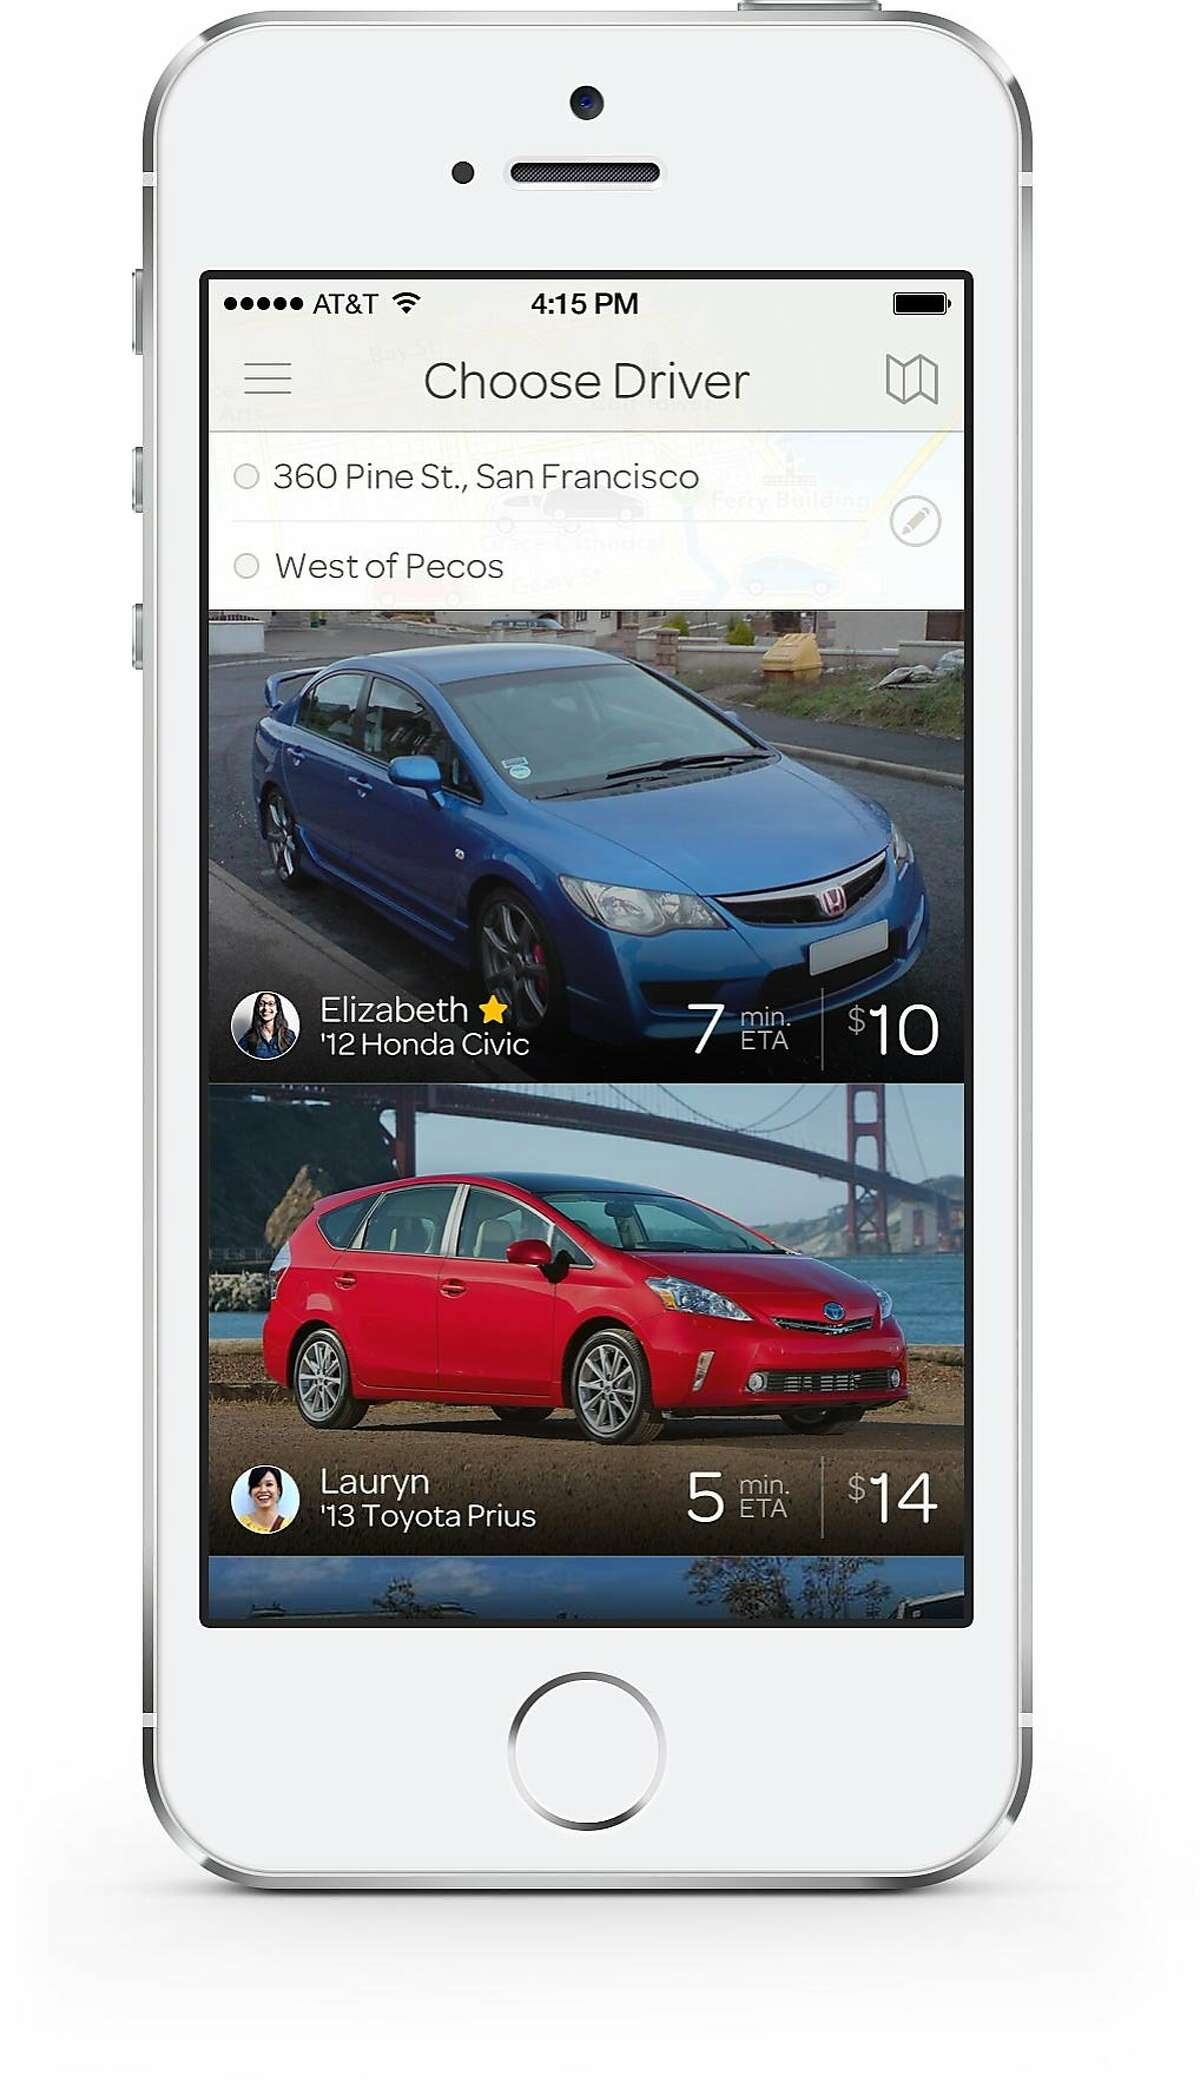 Sidecar's new marketplace model, lets passengers shop for rides, viewing information on the drivers' ratings, type of cars, pricing and current location. Drivers will be able to set their own prices and tweak their profiles with new photos, for instance, to compete for riders.